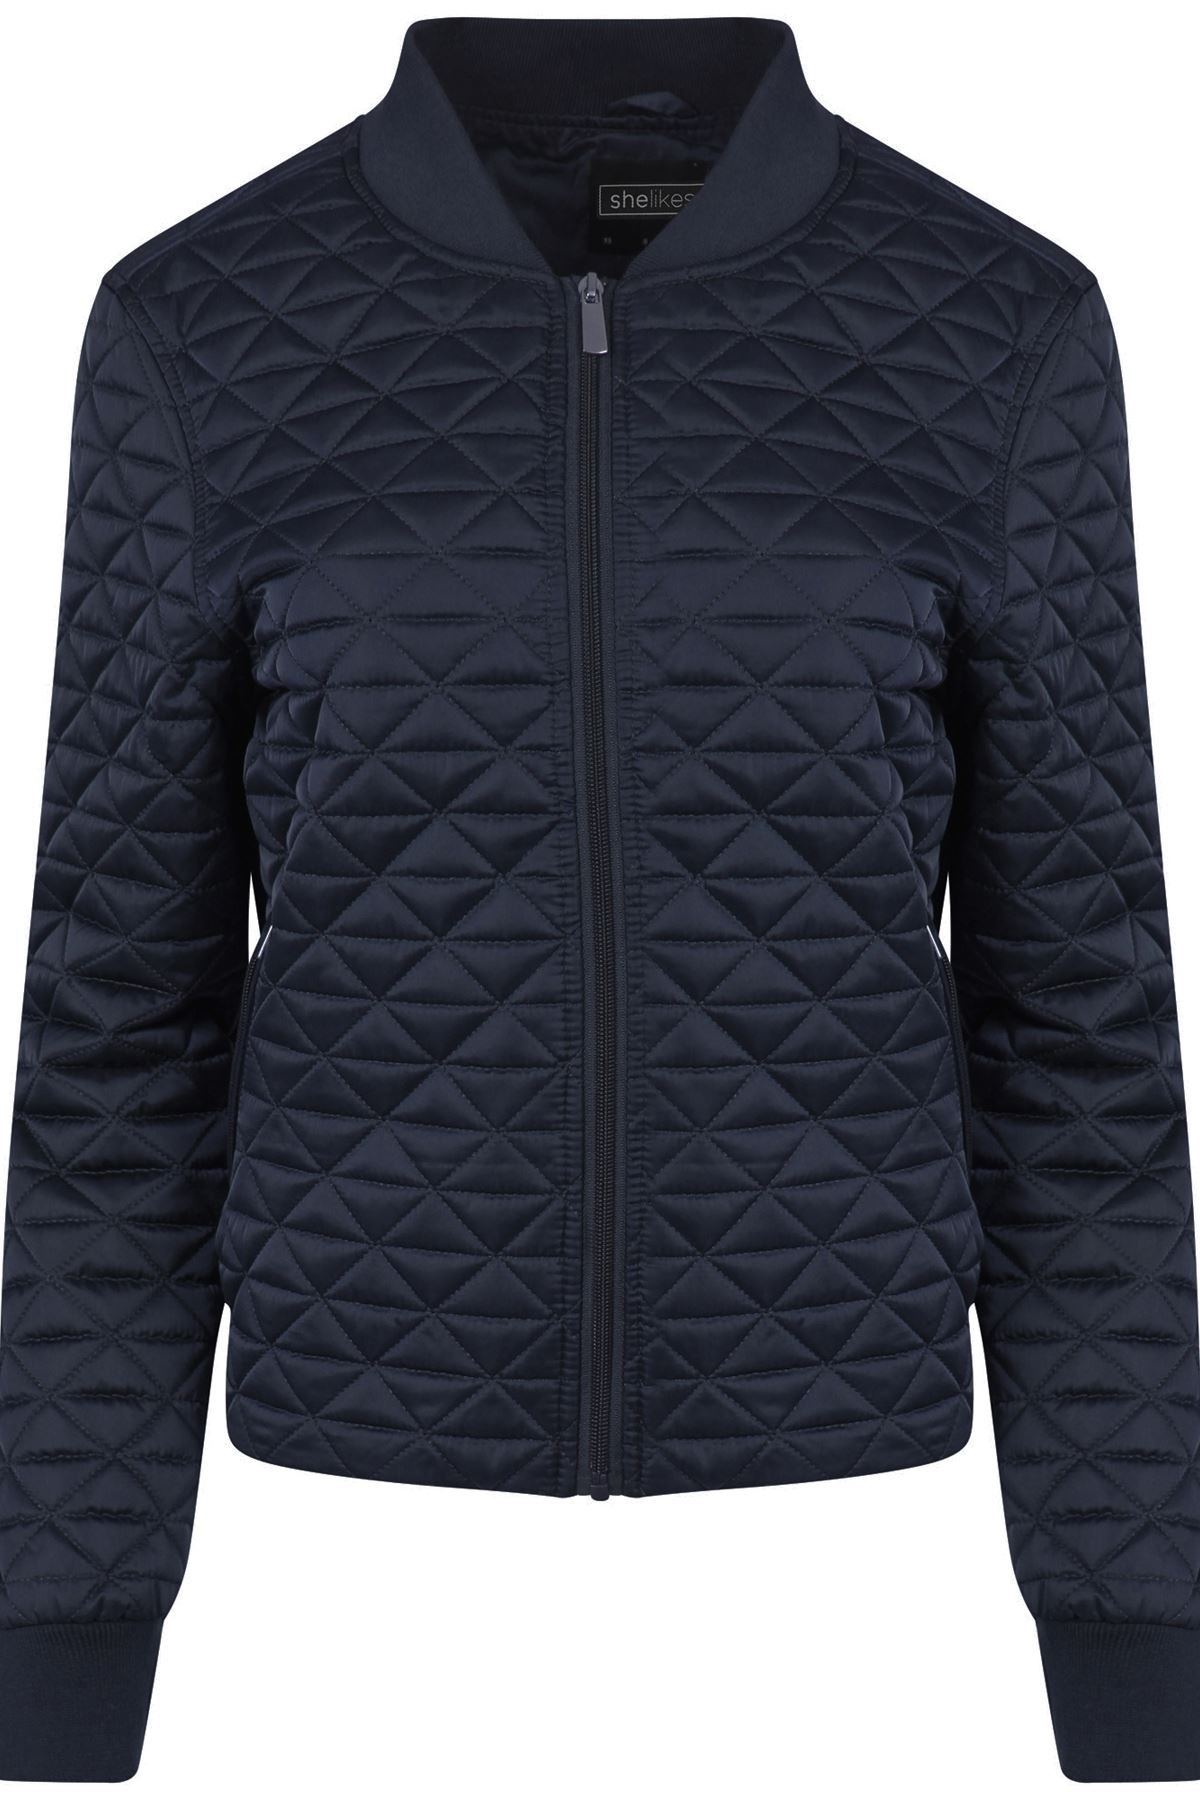 Womens Quilted Collared Zipped Autumn Navy Jacket ...